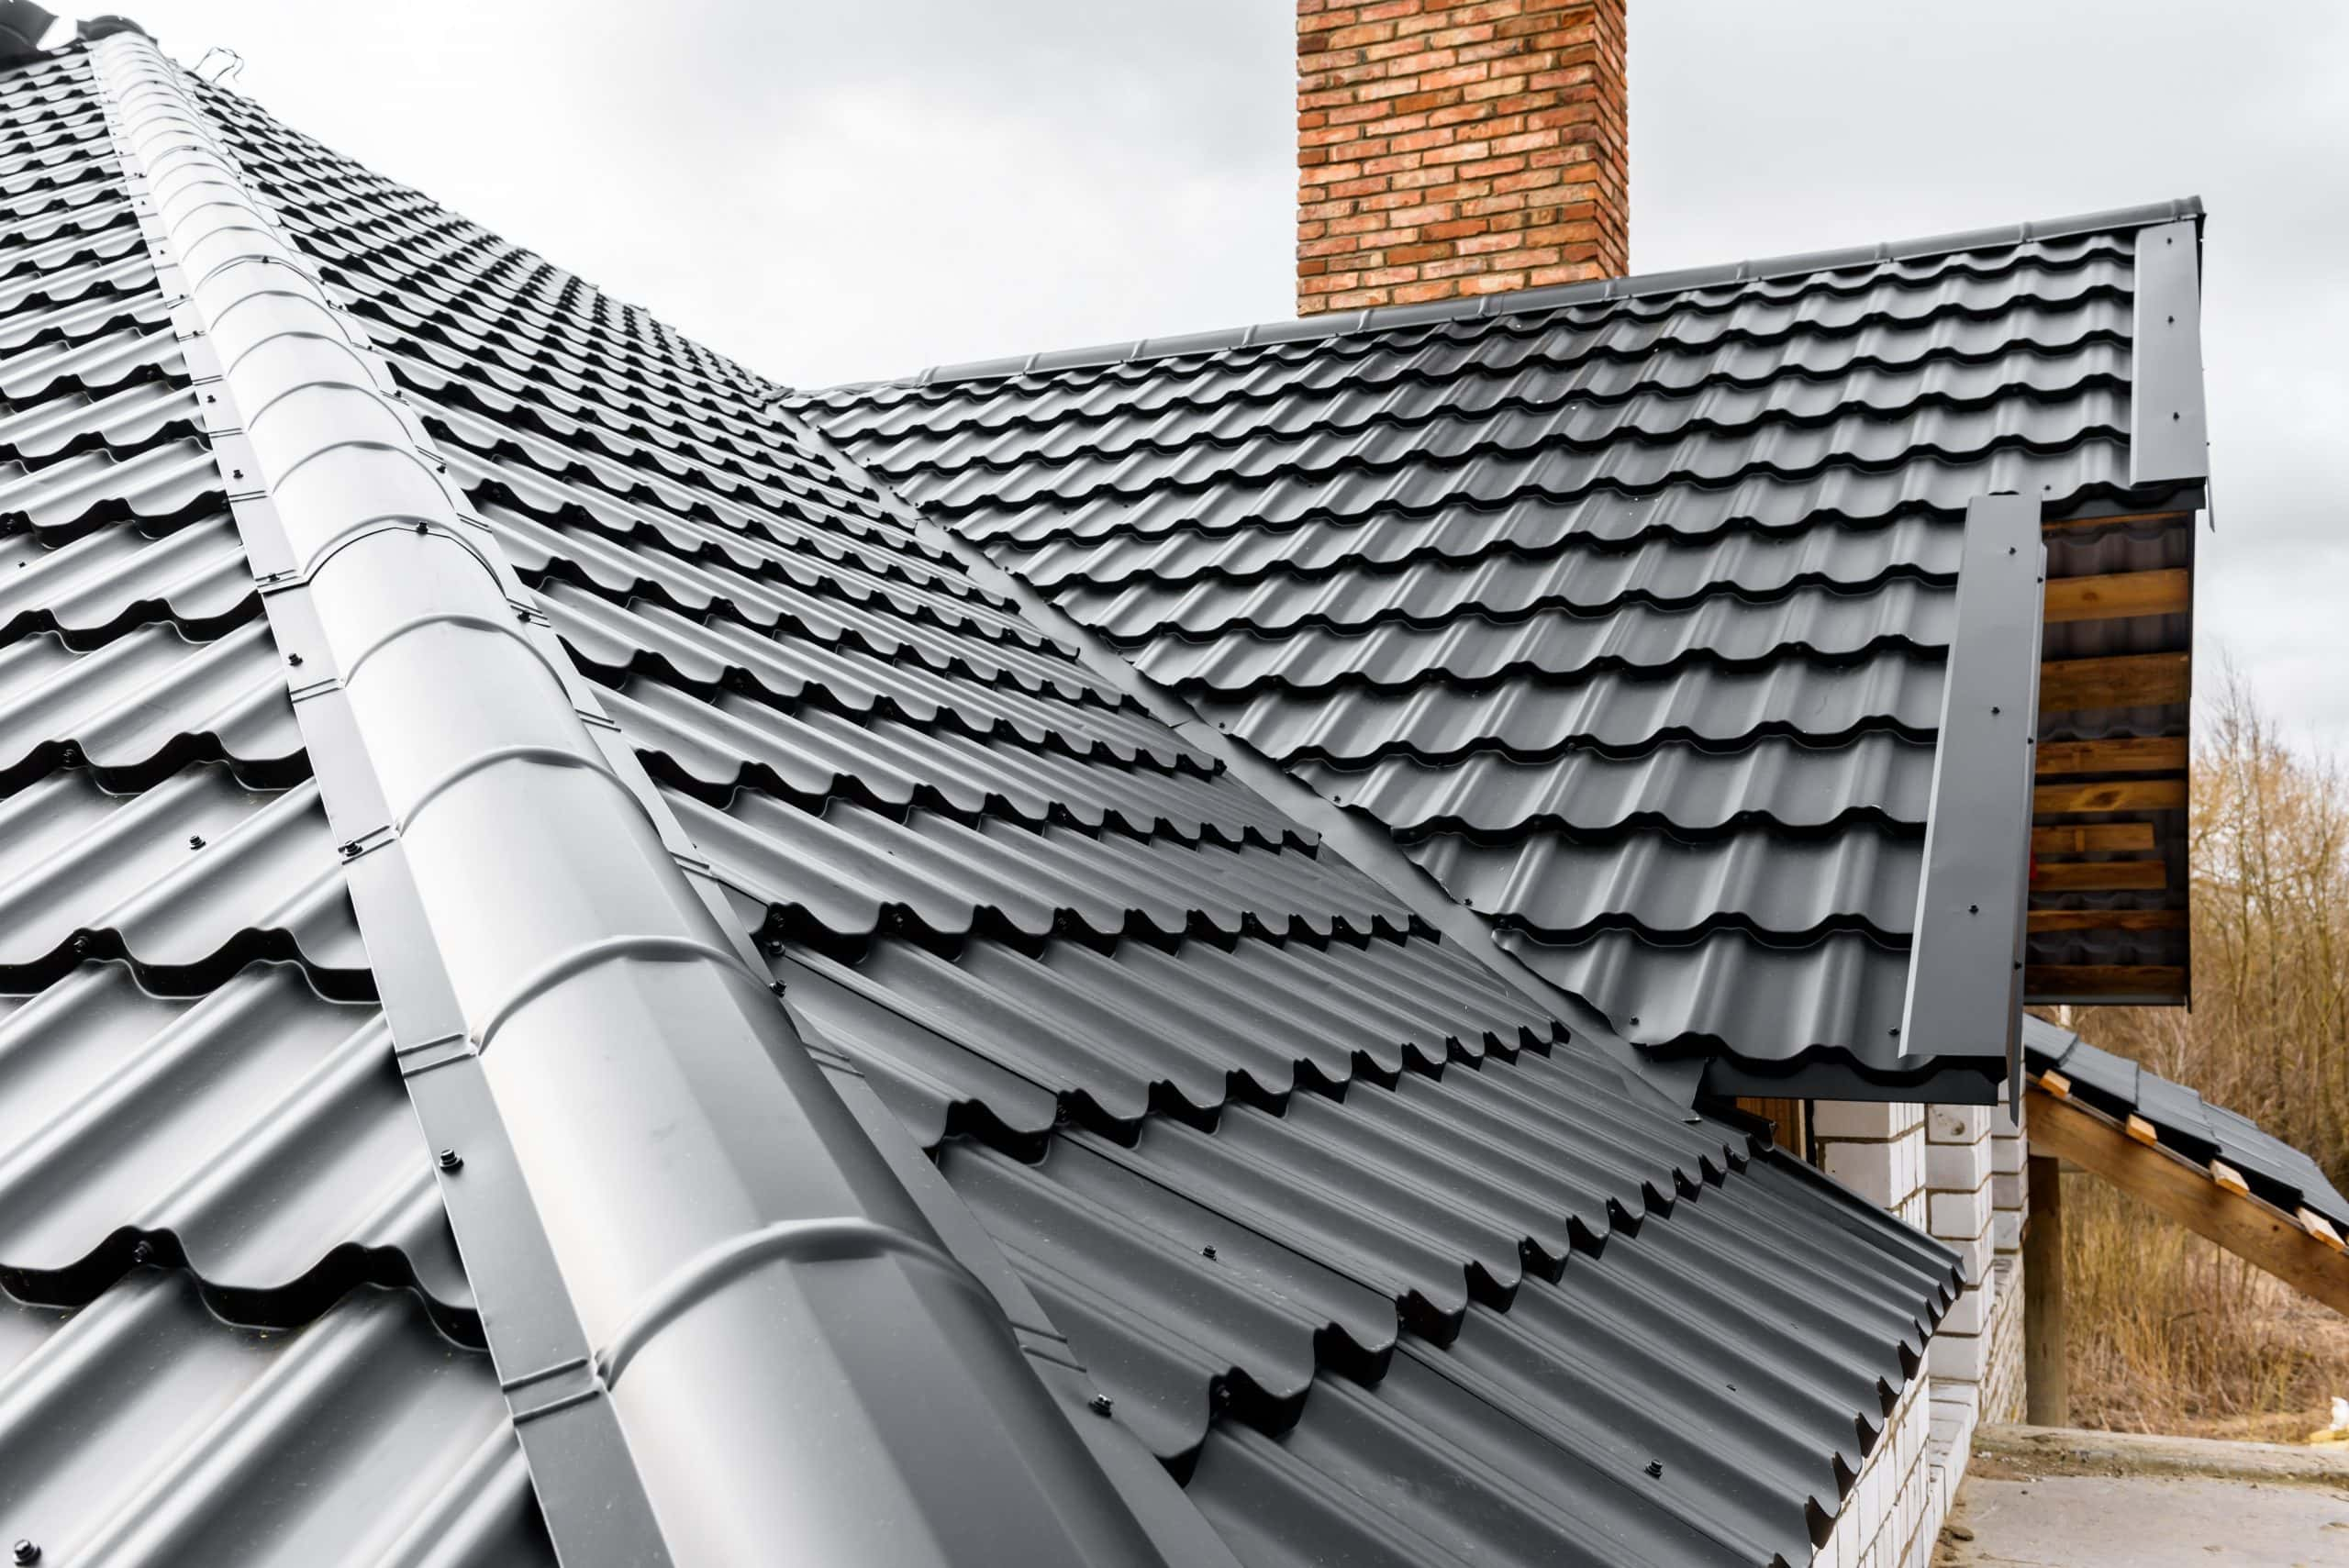 How Long Does Metal Roofing Last?